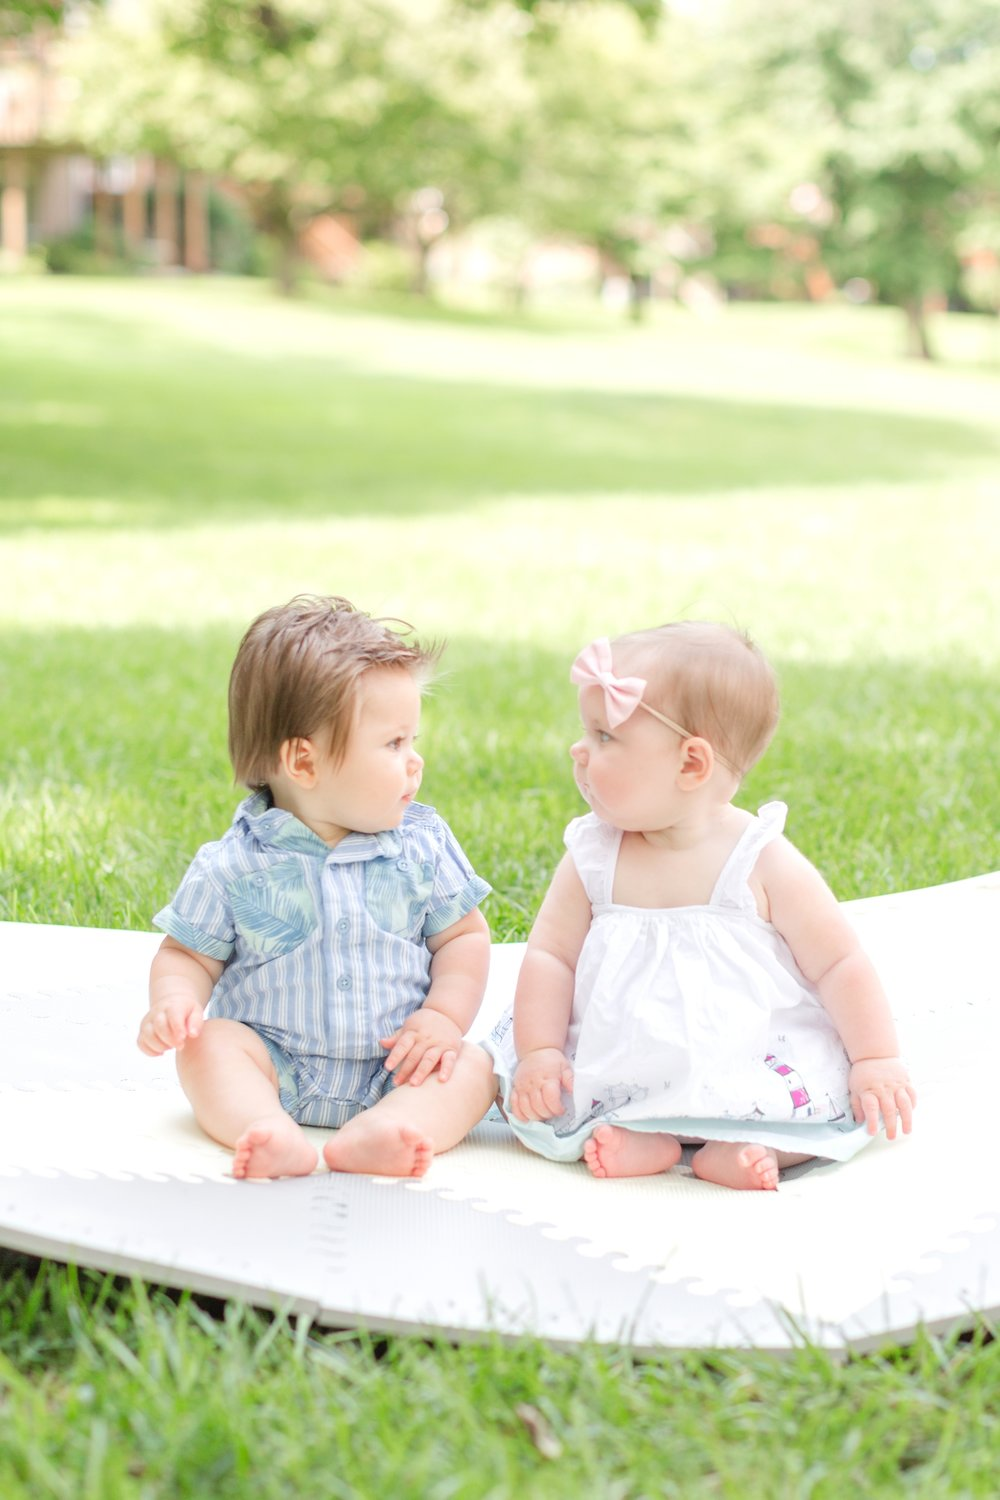 Payton & James 6 Months Old-8_towson-maryland-family-photographer-anna-grace-photography-photo.jpg